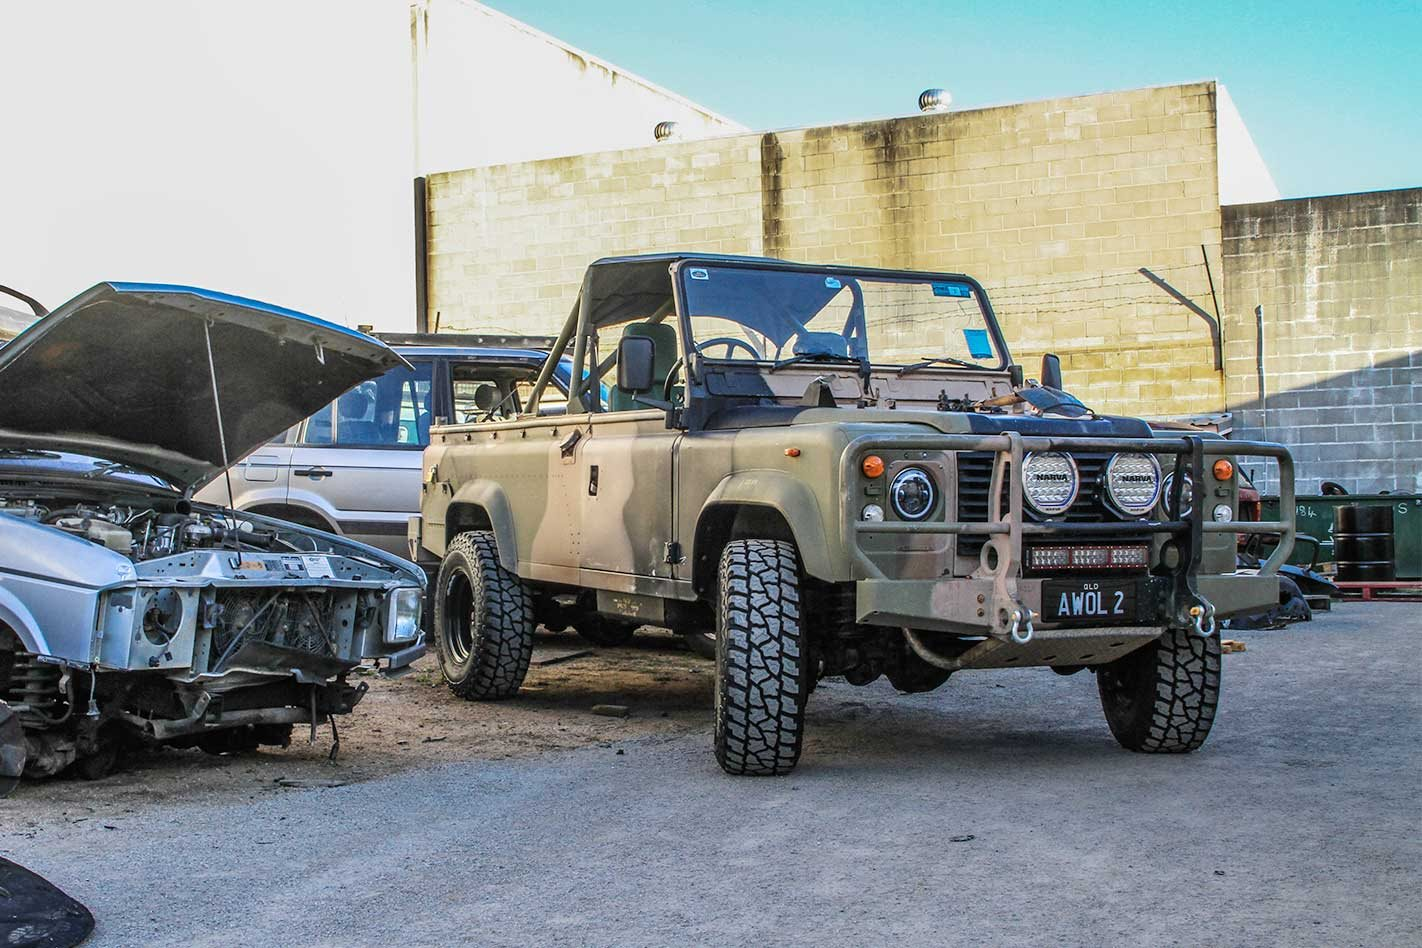 1988 Land Rover Perentie Defender 110 long-term review part 3: 4x4 Shed